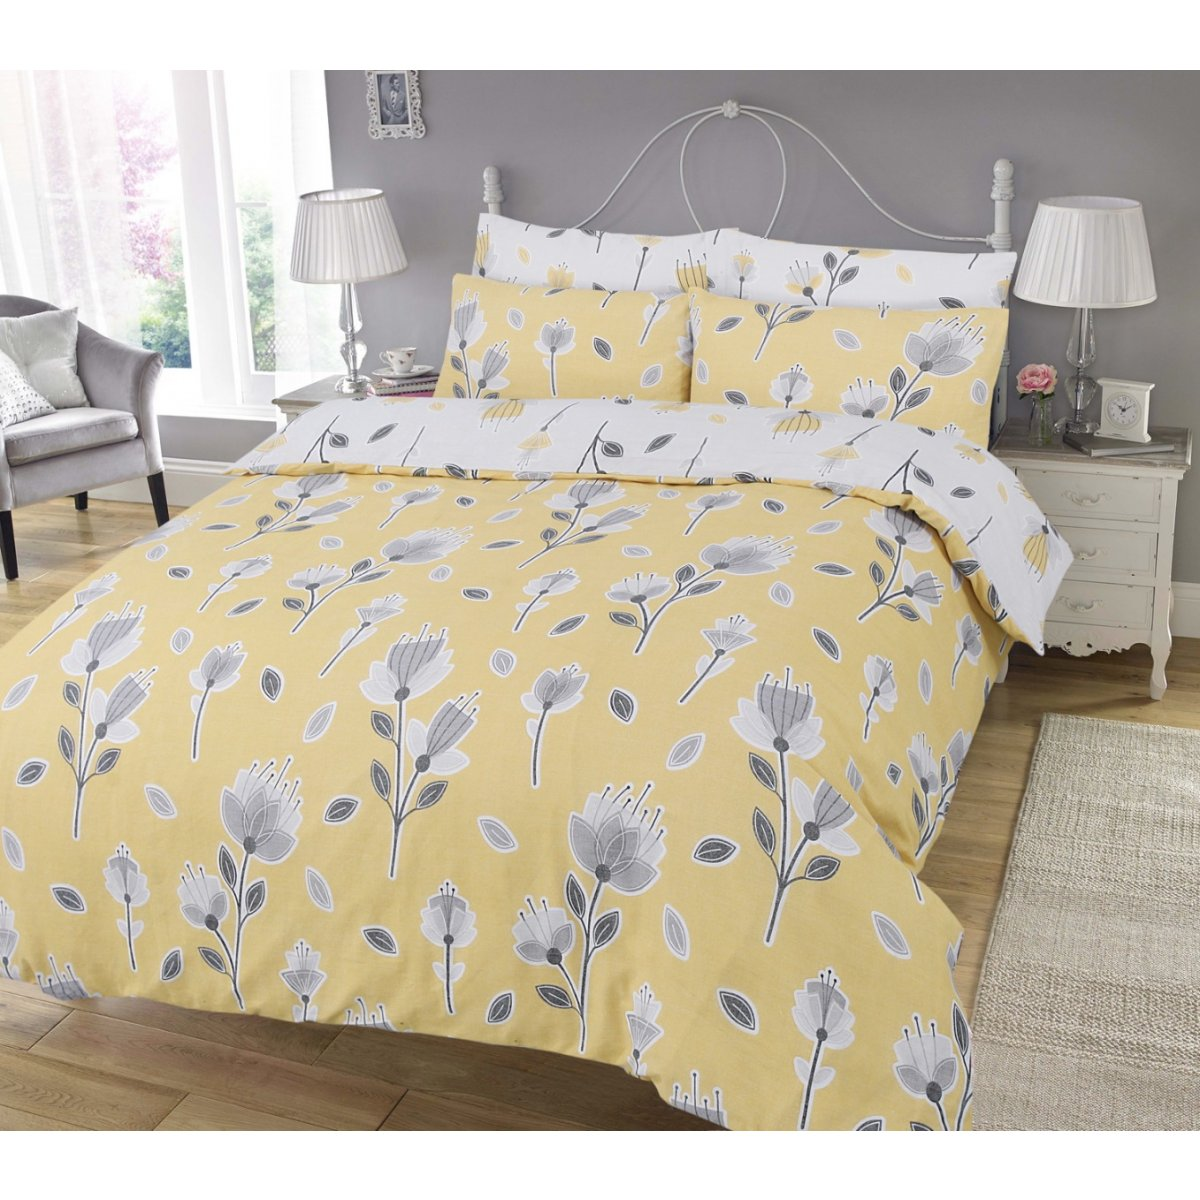 Geo Floral Ochre Bedding - Reversible Duvet Cover and Pillowcase Set